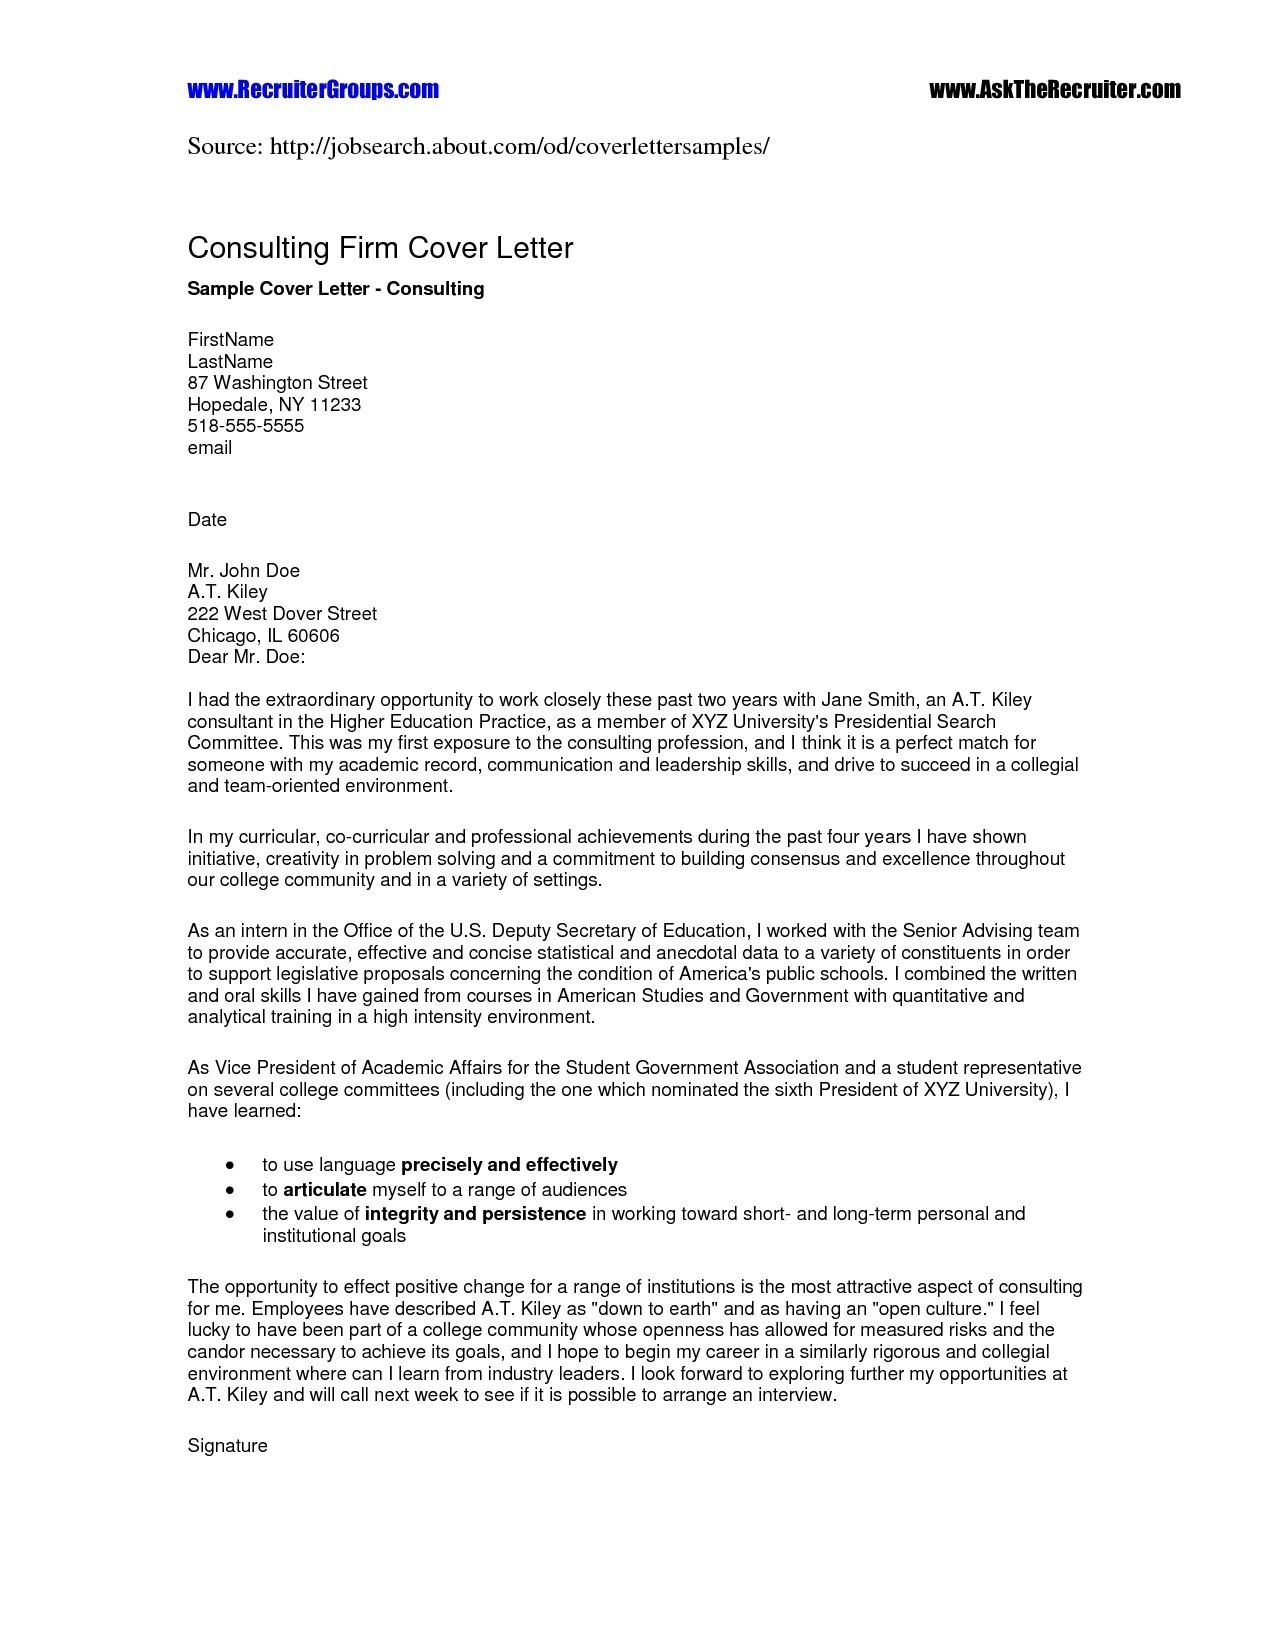 Short Cover Letter Template Samples | Letter Template Collection